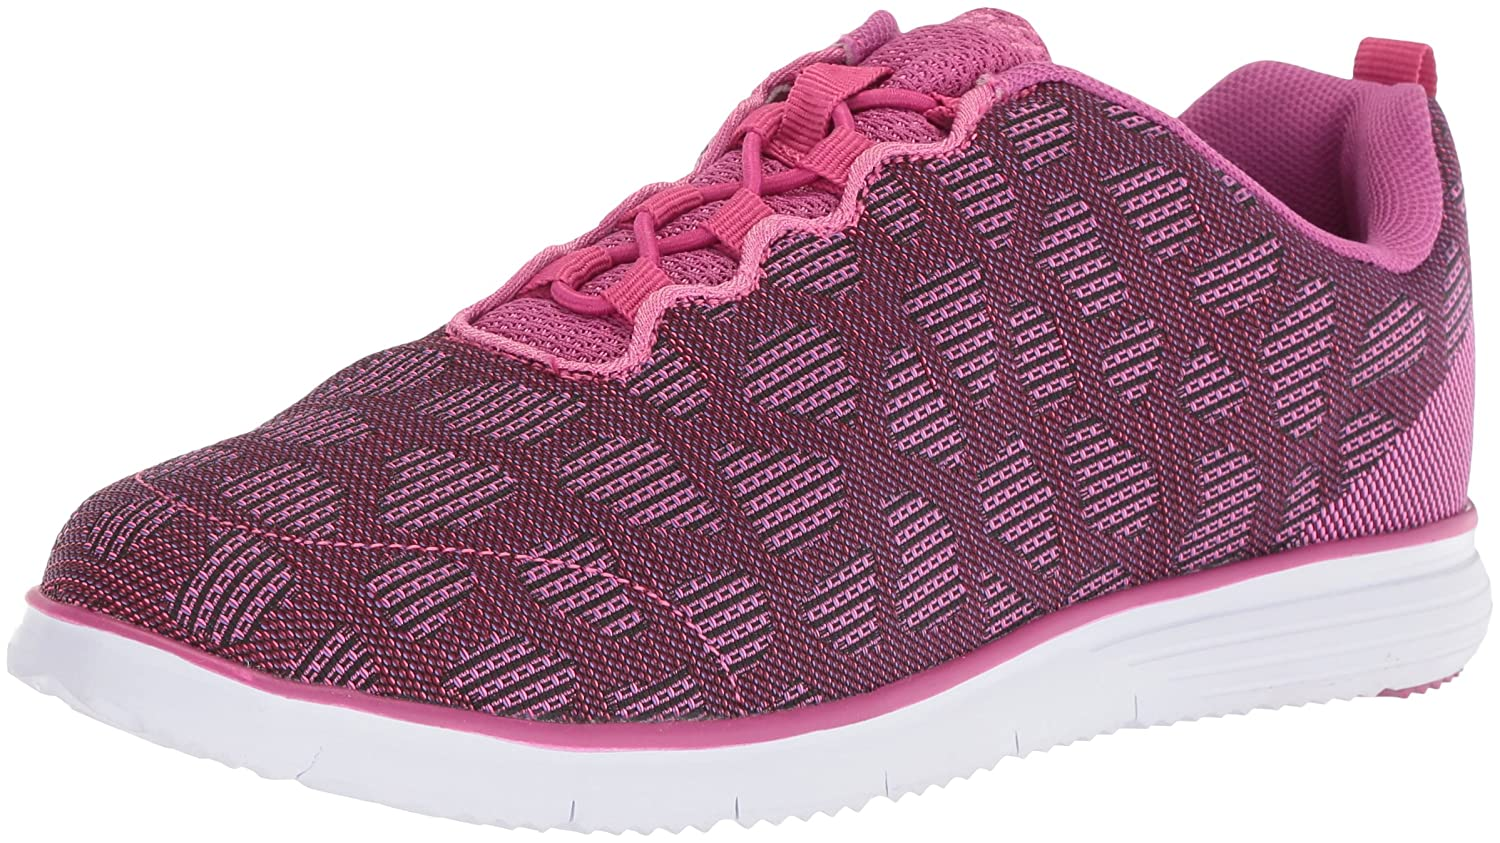 Propét Women's TravelFit Walking Shoe B073DNPNM2 9 B(M) US|Berry